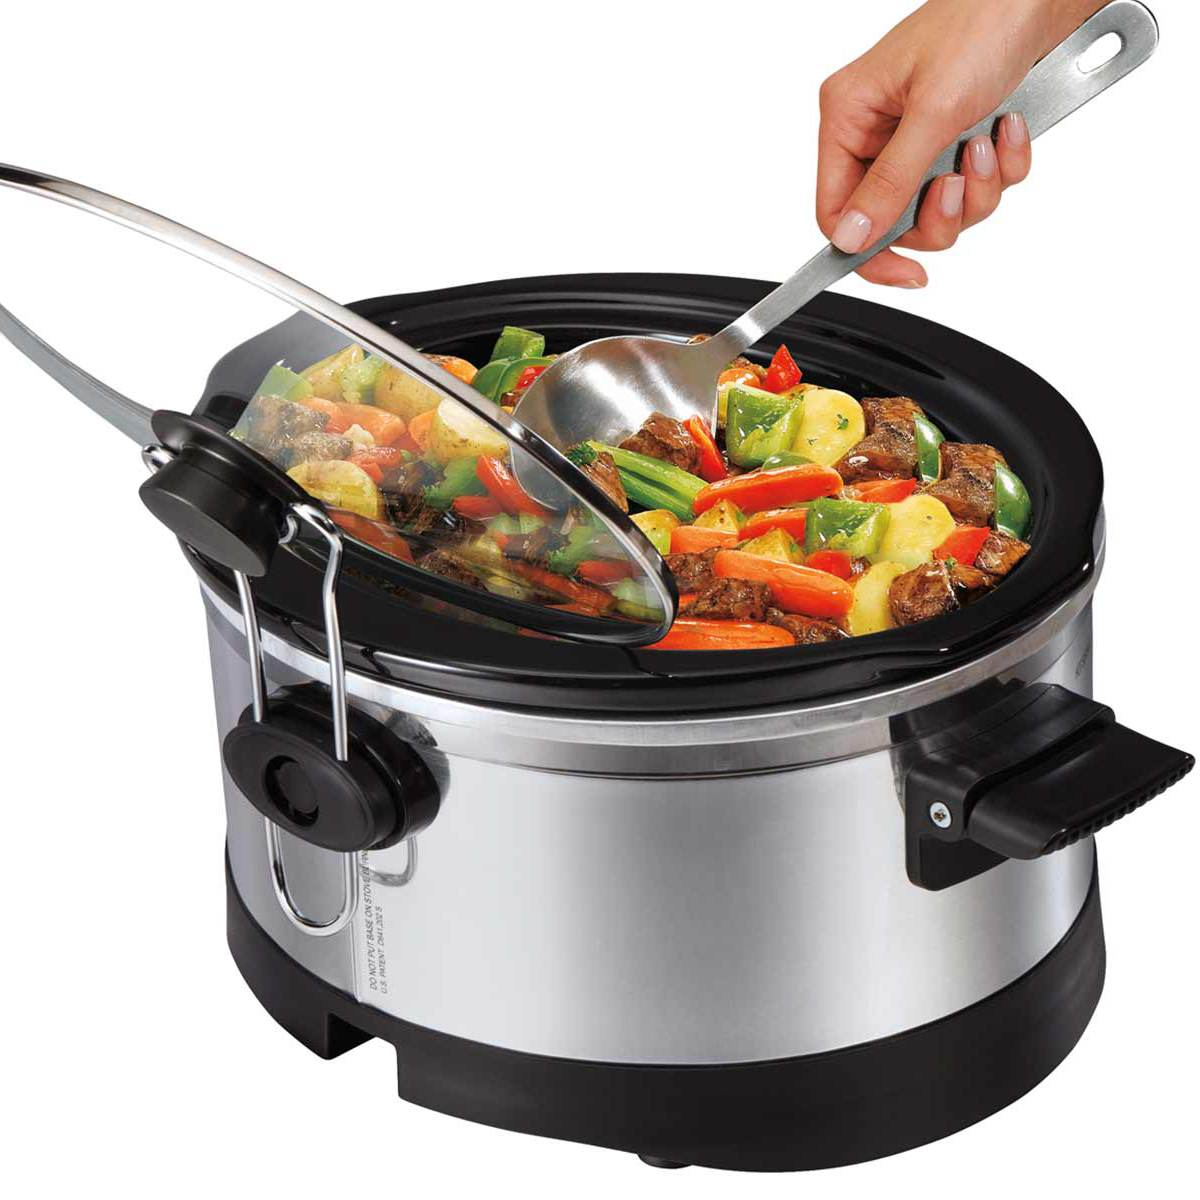 IntelliTime™ 6 Quart Slow Cooker (33564)